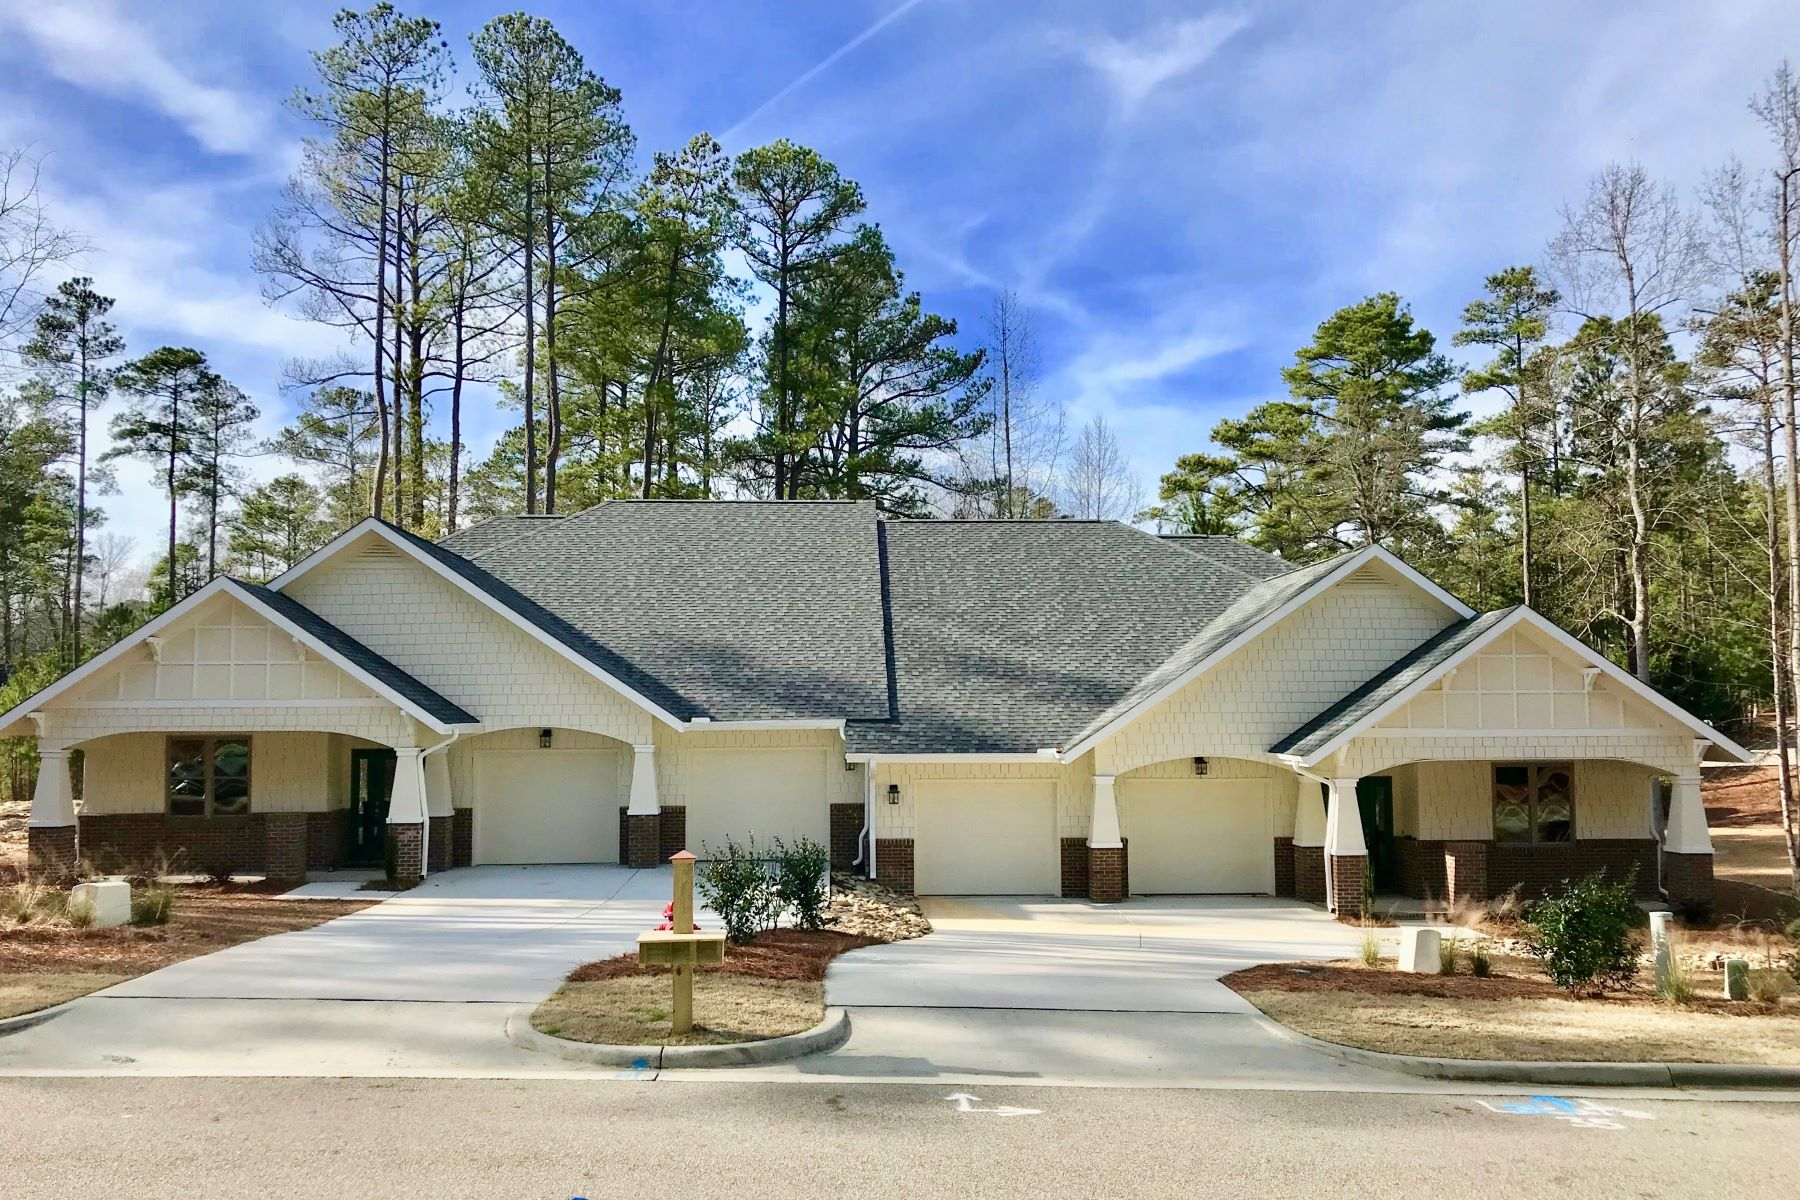 townhouses for Sale at 31 Lamplighter Village Dr. Pinehurst, North Carolina 28374 United States